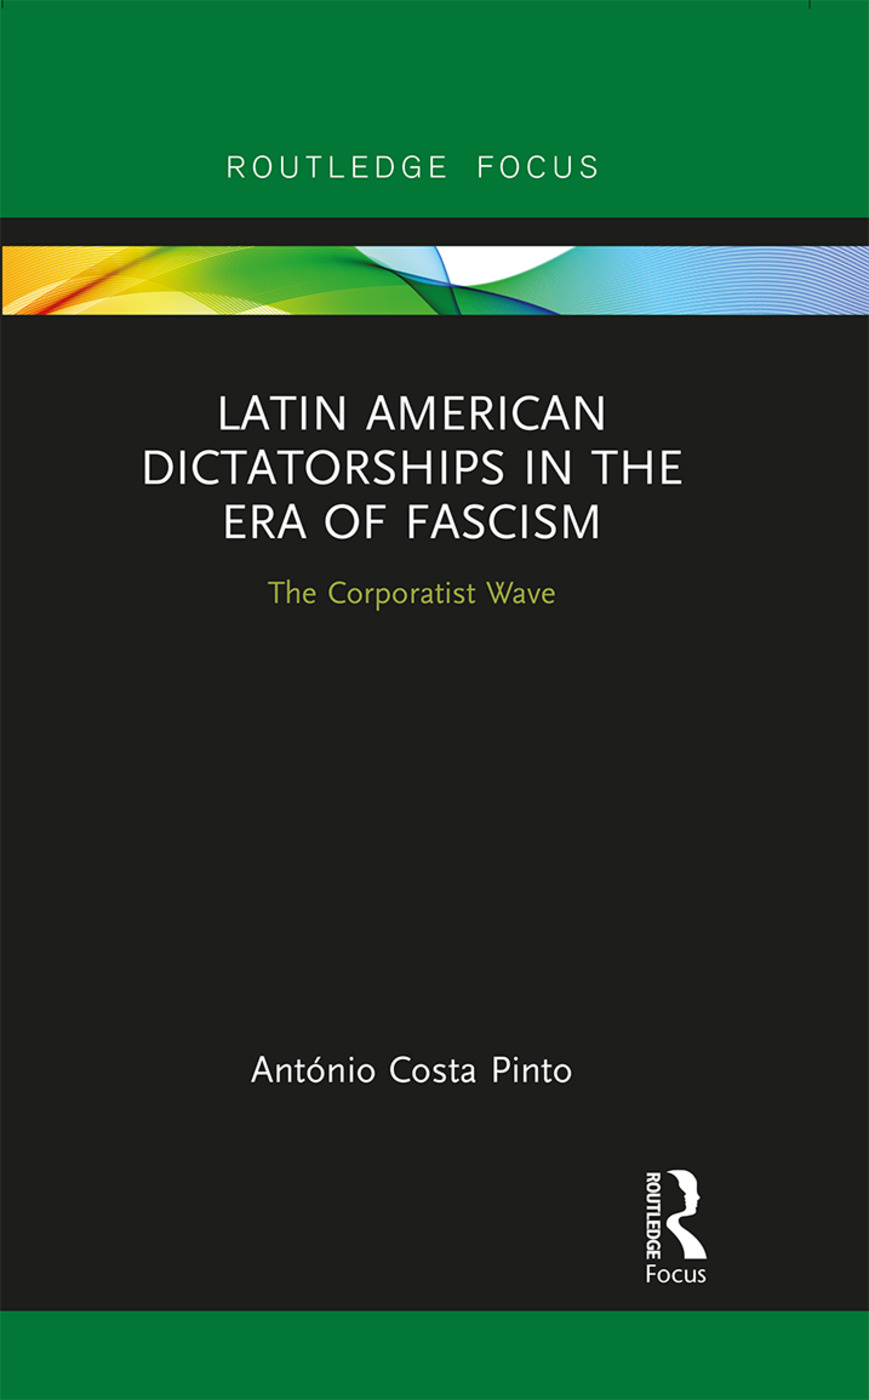 Latin American Dictatorships in the Era of Fascism: The Corporatist Wave book cover